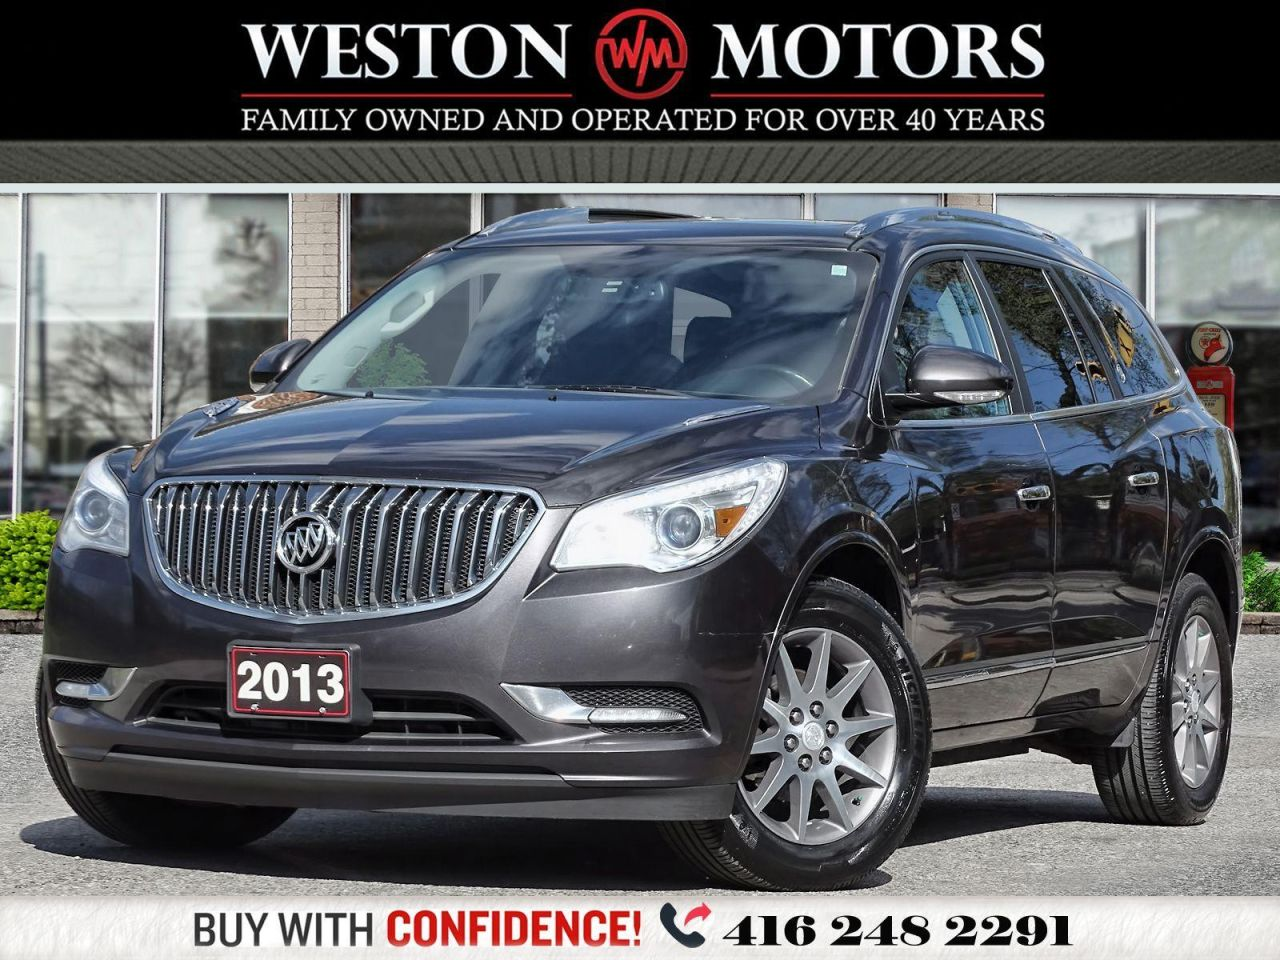 2013 Buick Enclave 3.6L*AWD*LEATHER*SUNROOF*NAVIGATION*FULLY LOADED